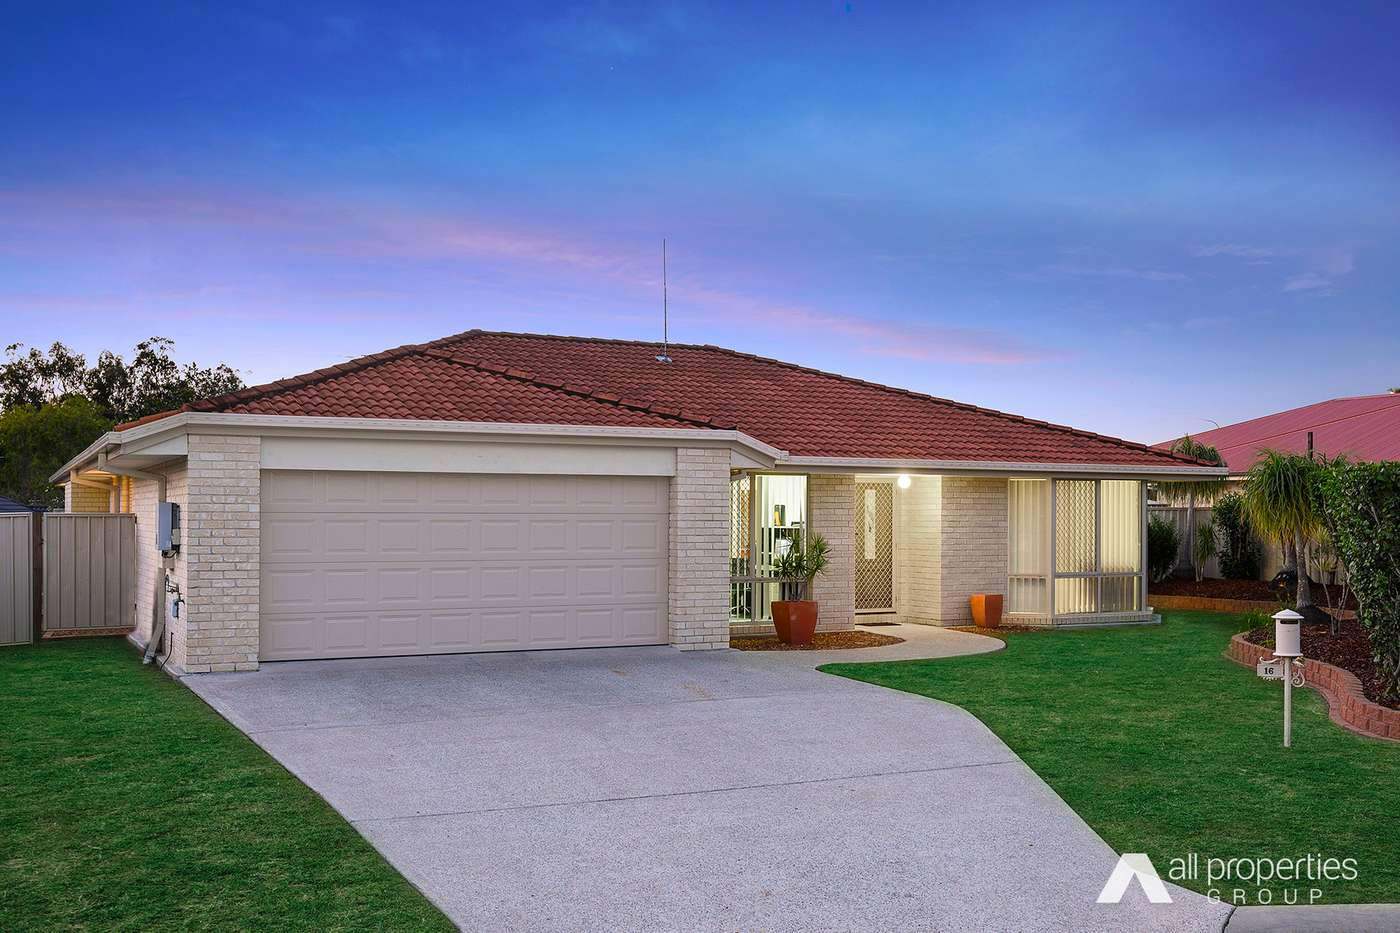 Main view of Homely house listing, 16 Nightingale Place, Heritage Park, QLD 4118